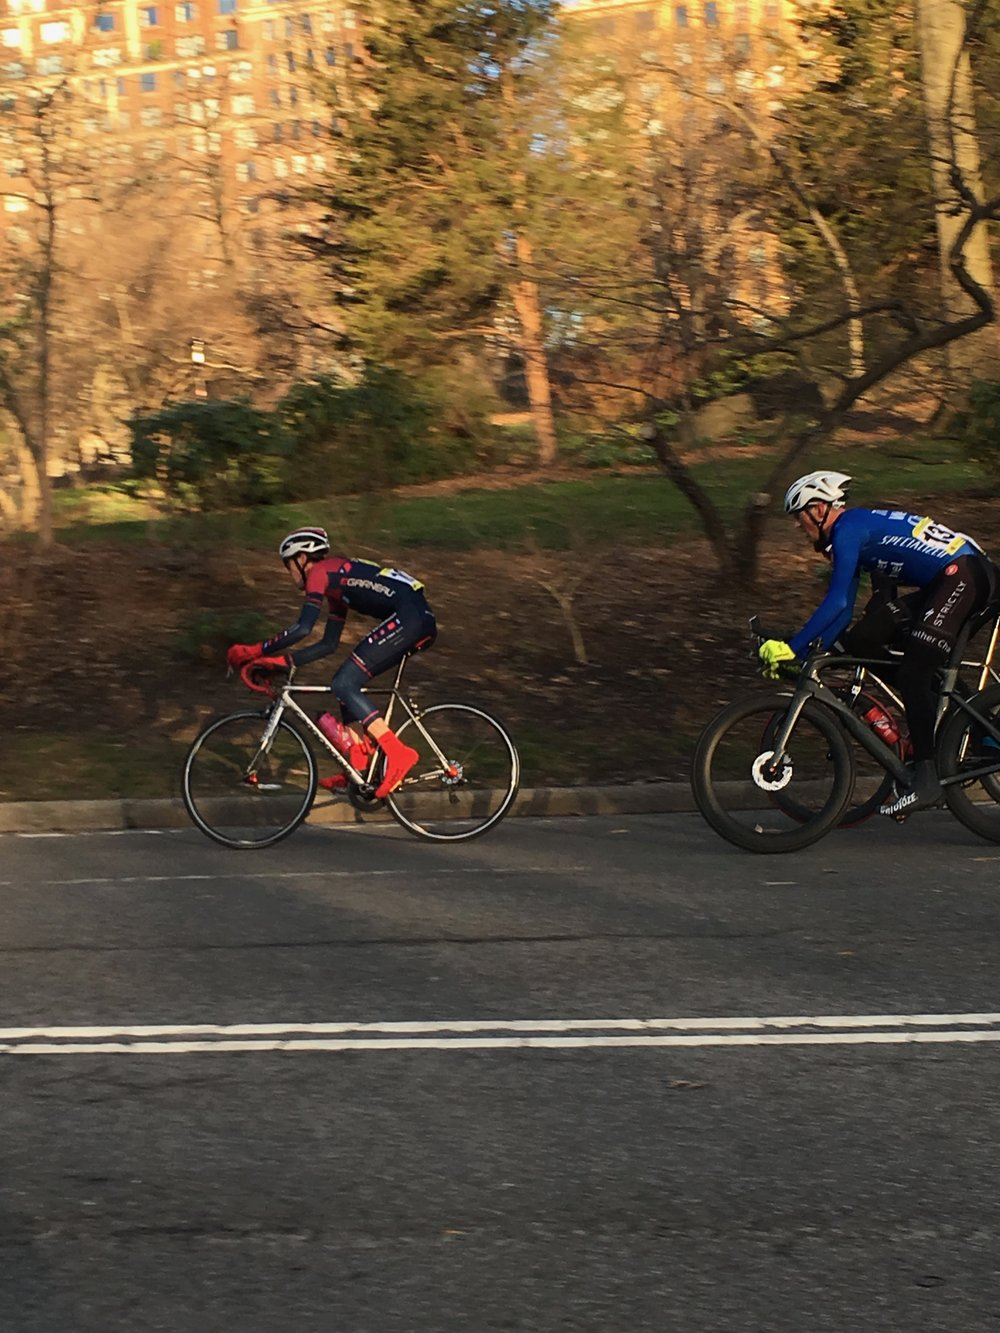 Richard Scudney doing work for the squad on the front of a very fast A field in Central Park